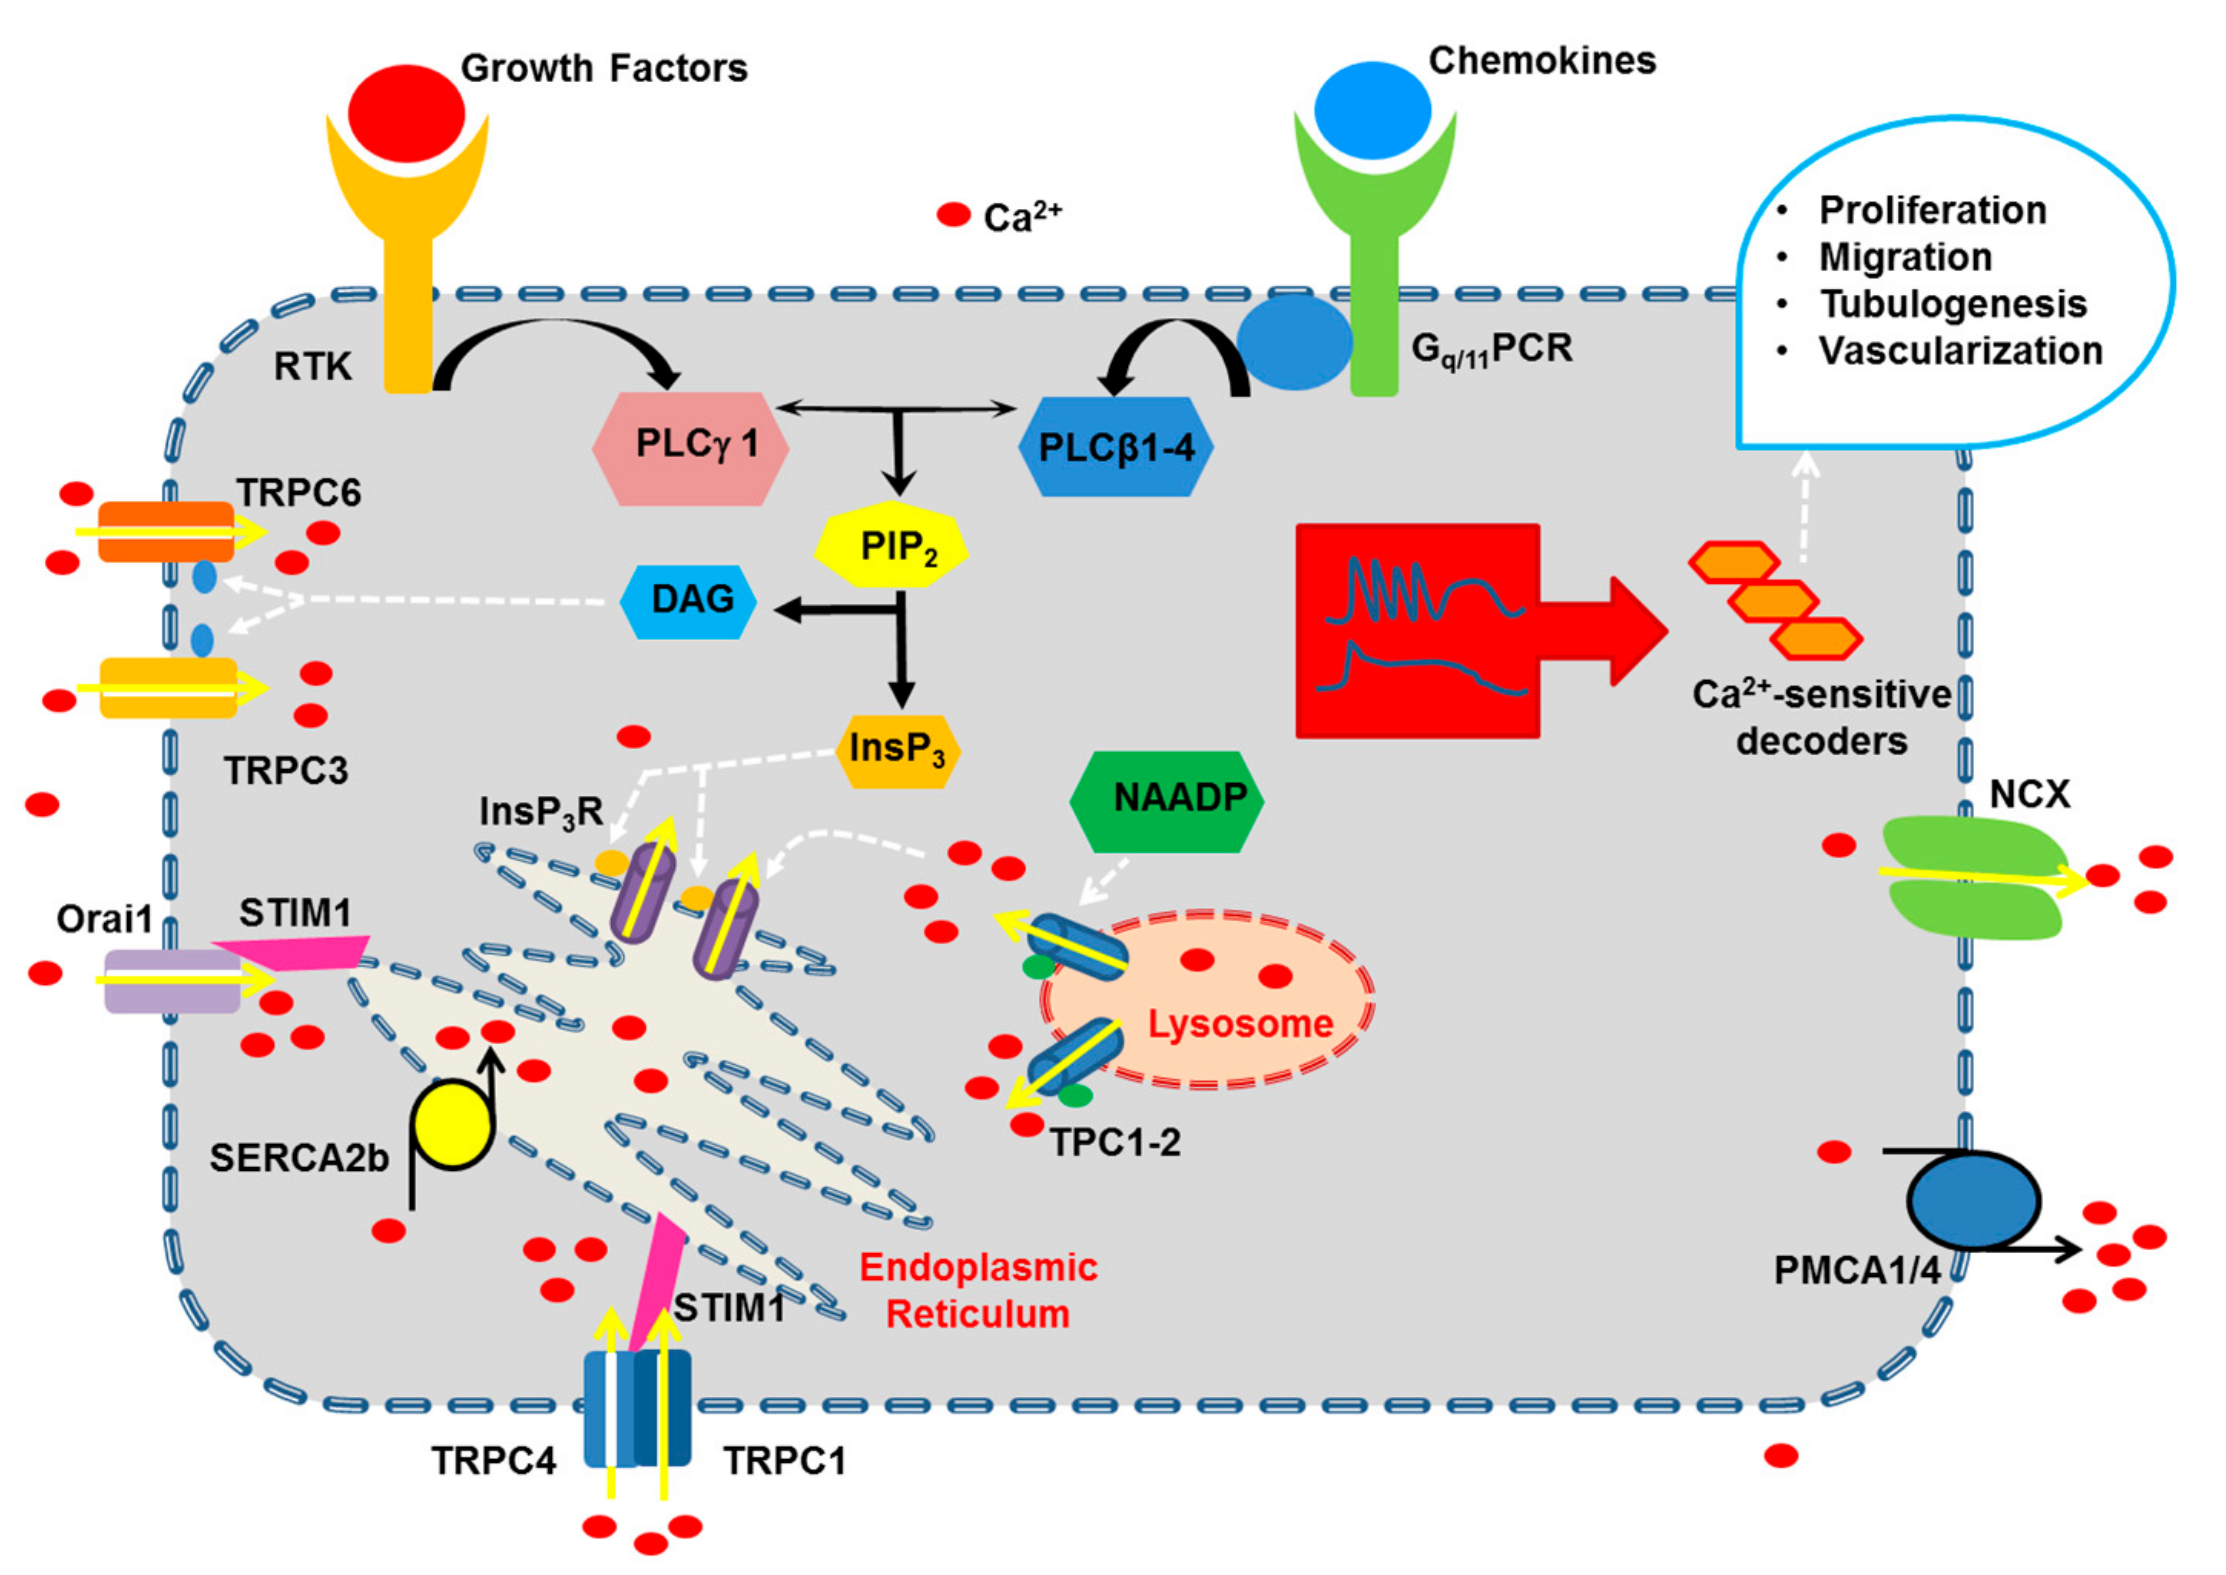 Vascular endothelium - physiology, pathology, and therapeutic opportunities